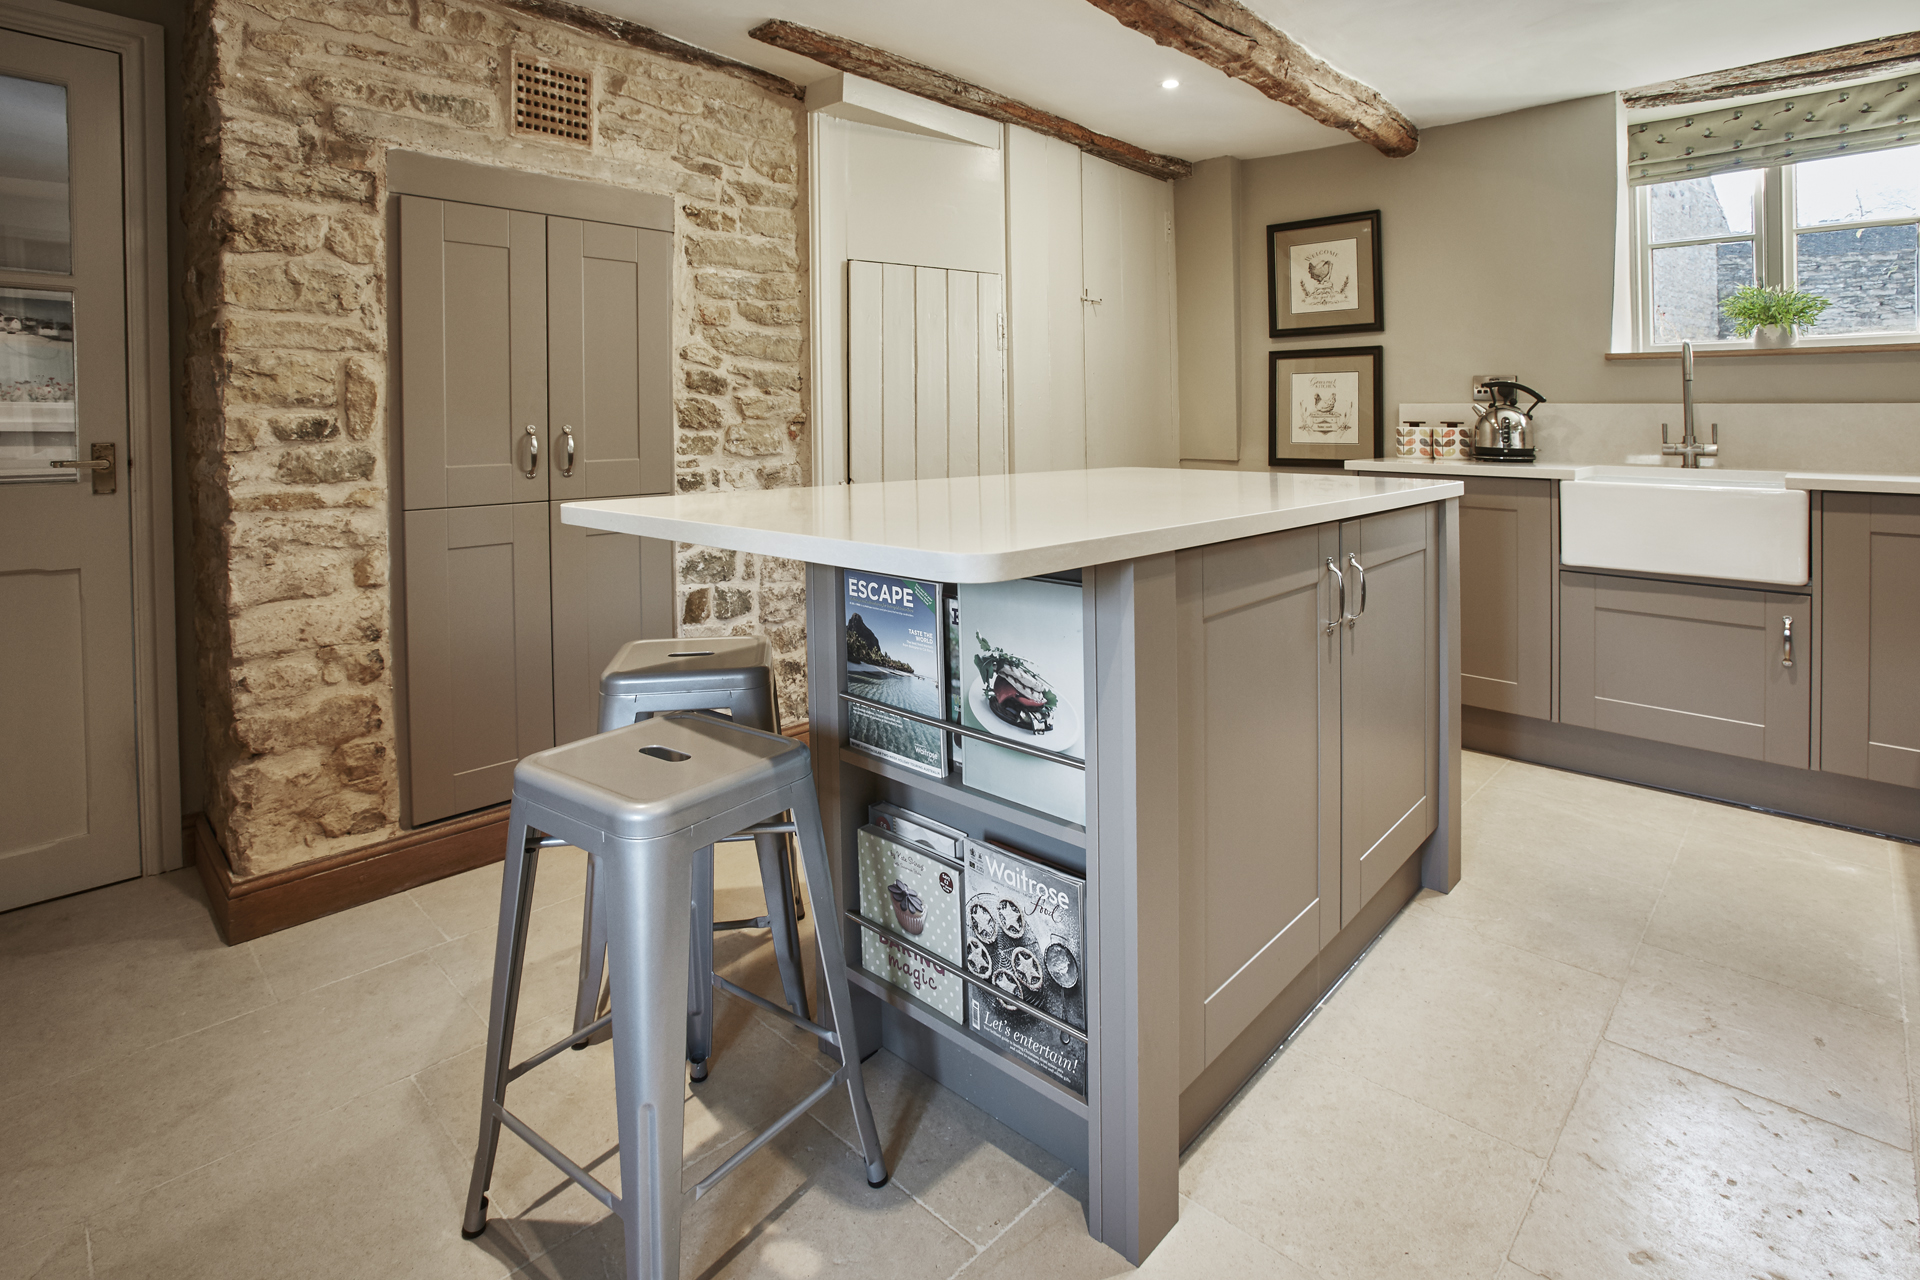 John Lewis Fitted Kitchen Brochure Adam Gault Photography